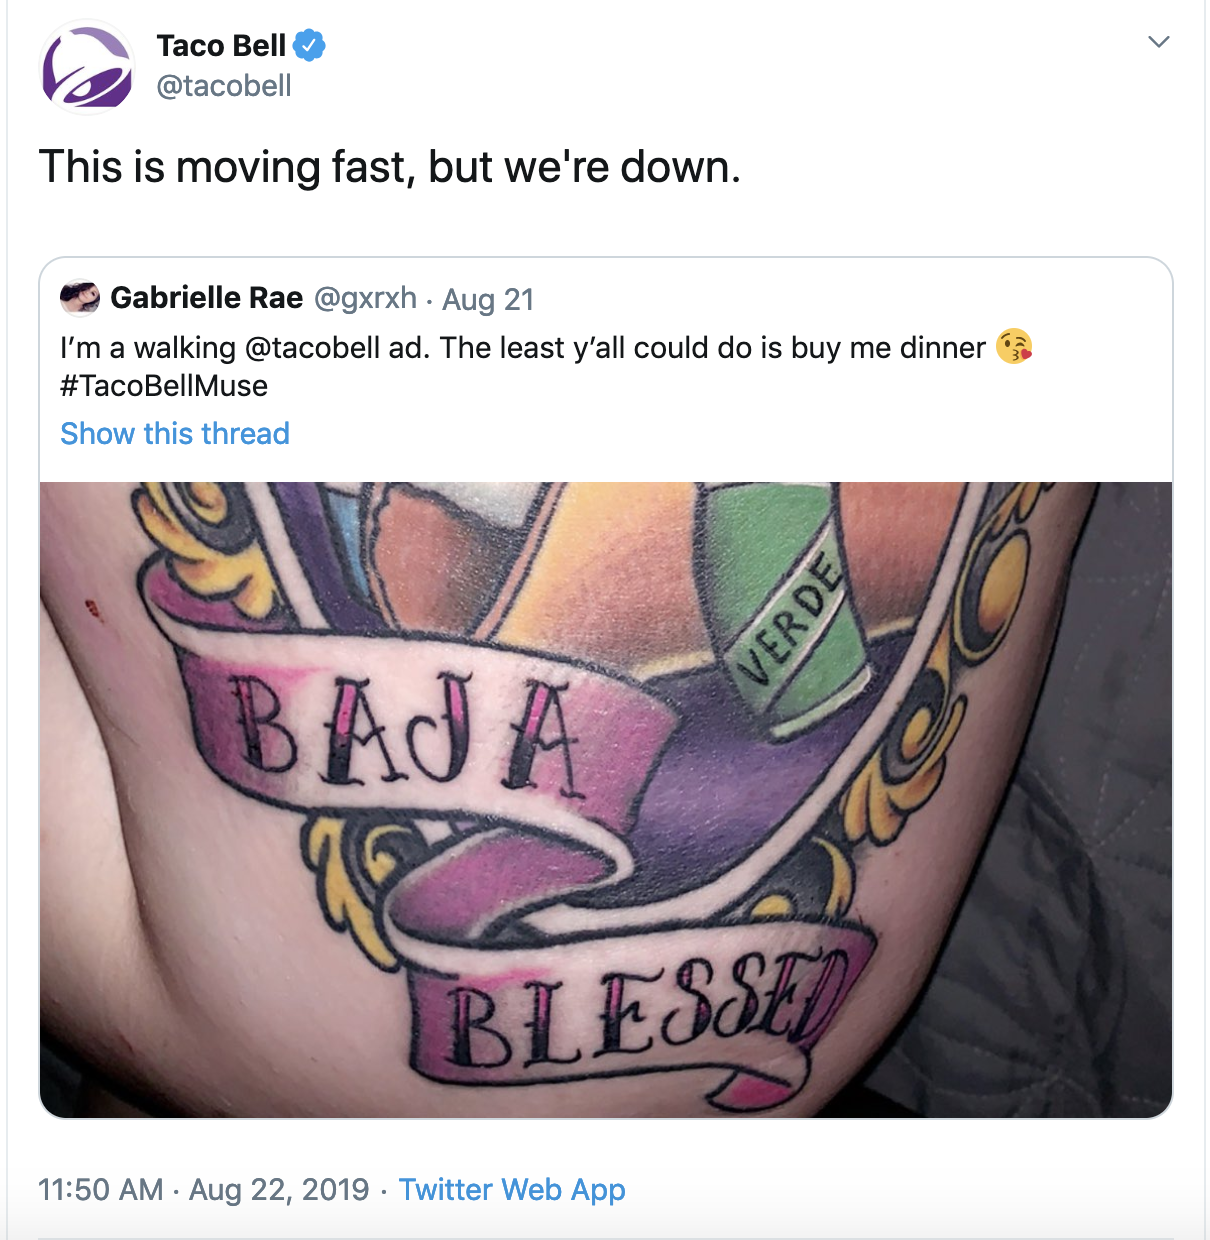 Taco Bell uses humor to delight customers on Twitter